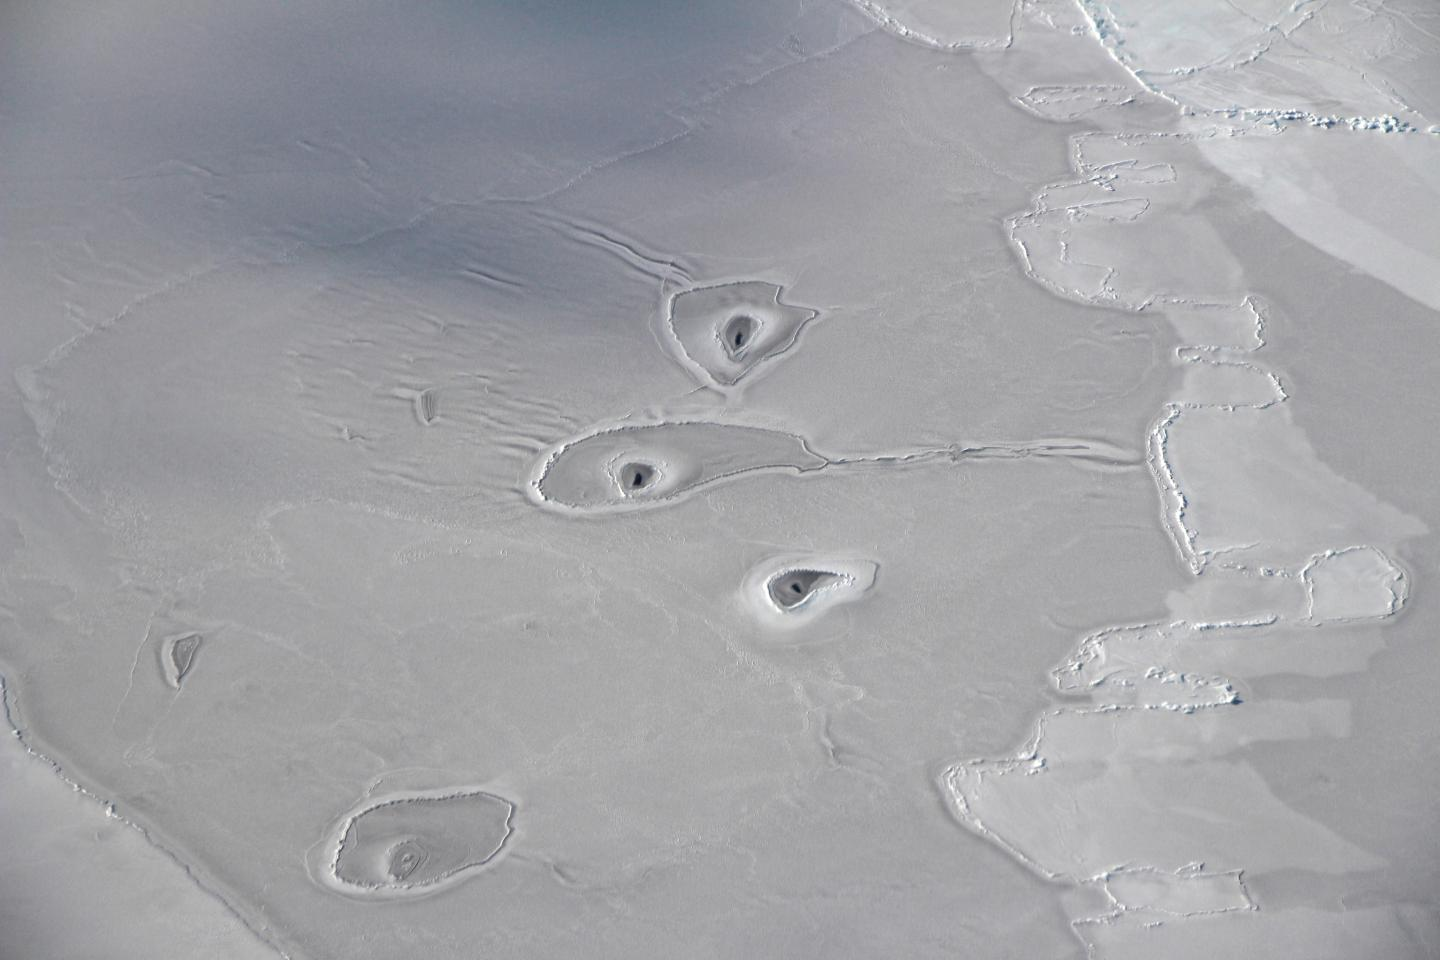 Mysterious Ice Holes